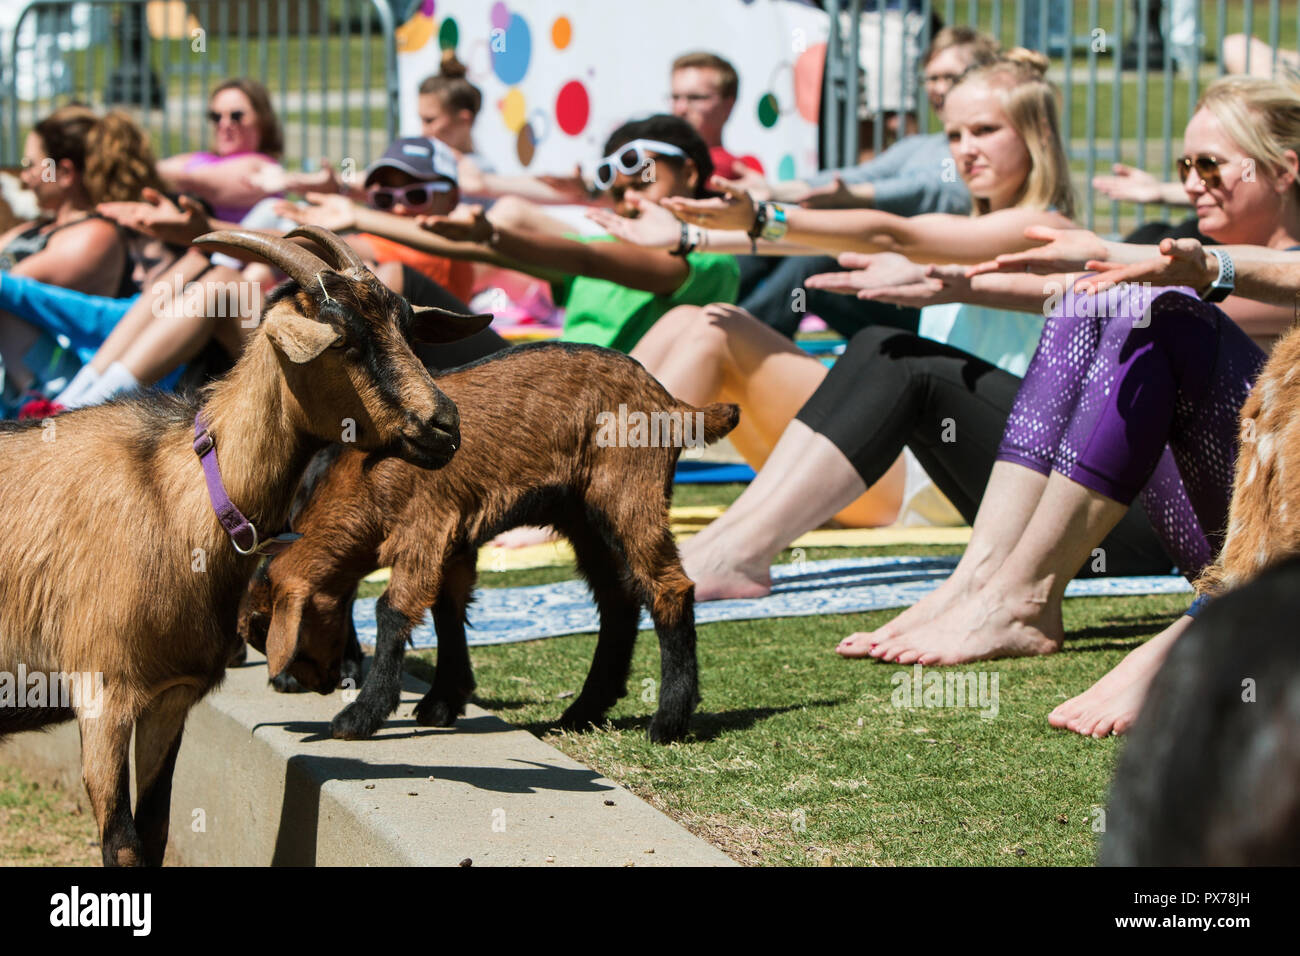 Download Free Images Of Goats Pictures